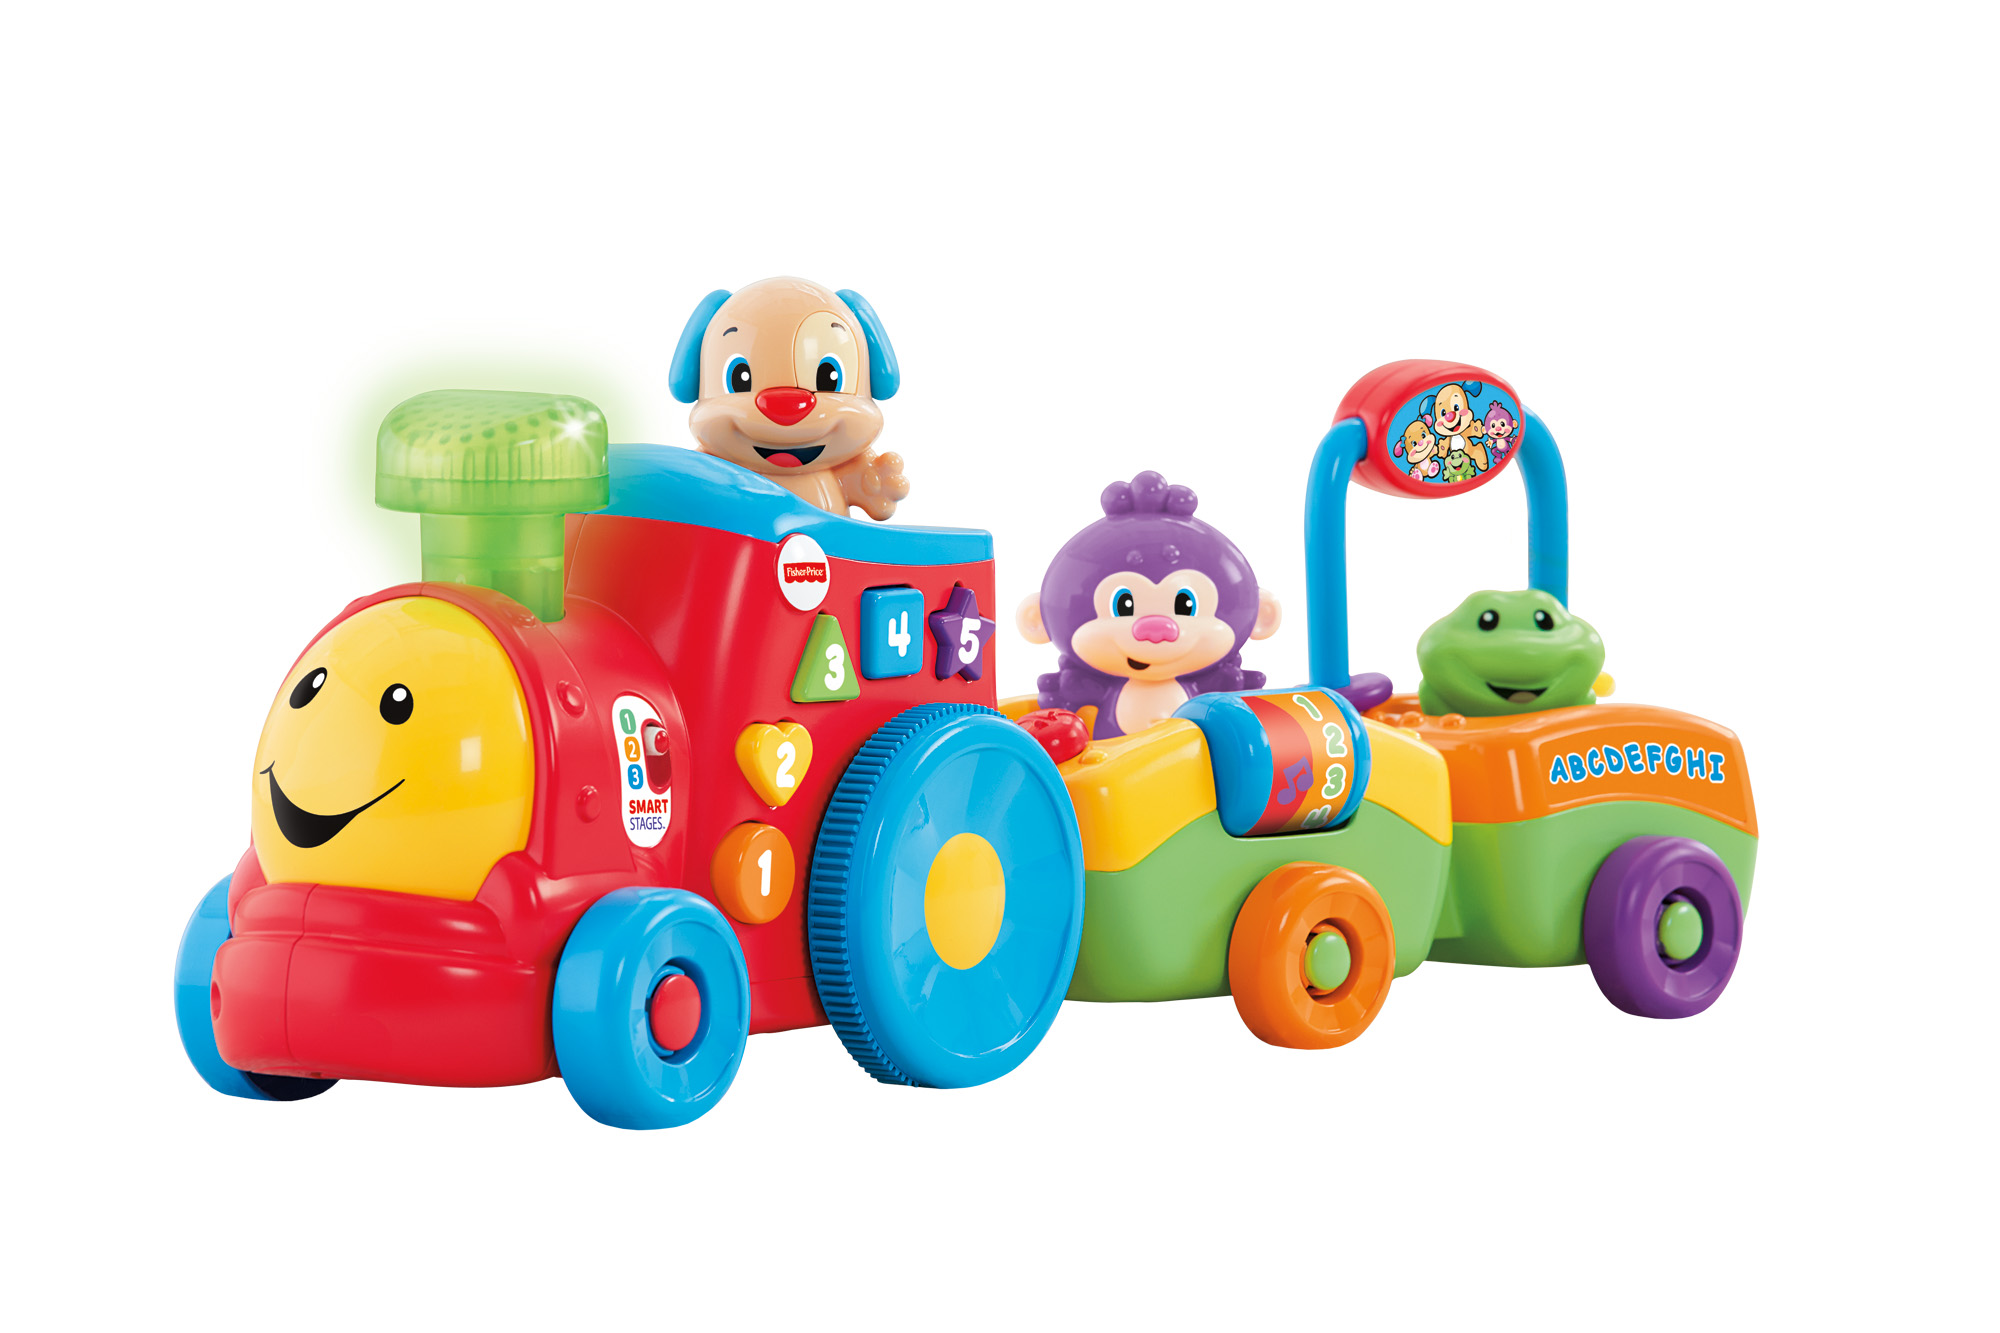 Fisher Price Laugh & Learn Puppy's Smart Stages Train by Fisher-Price